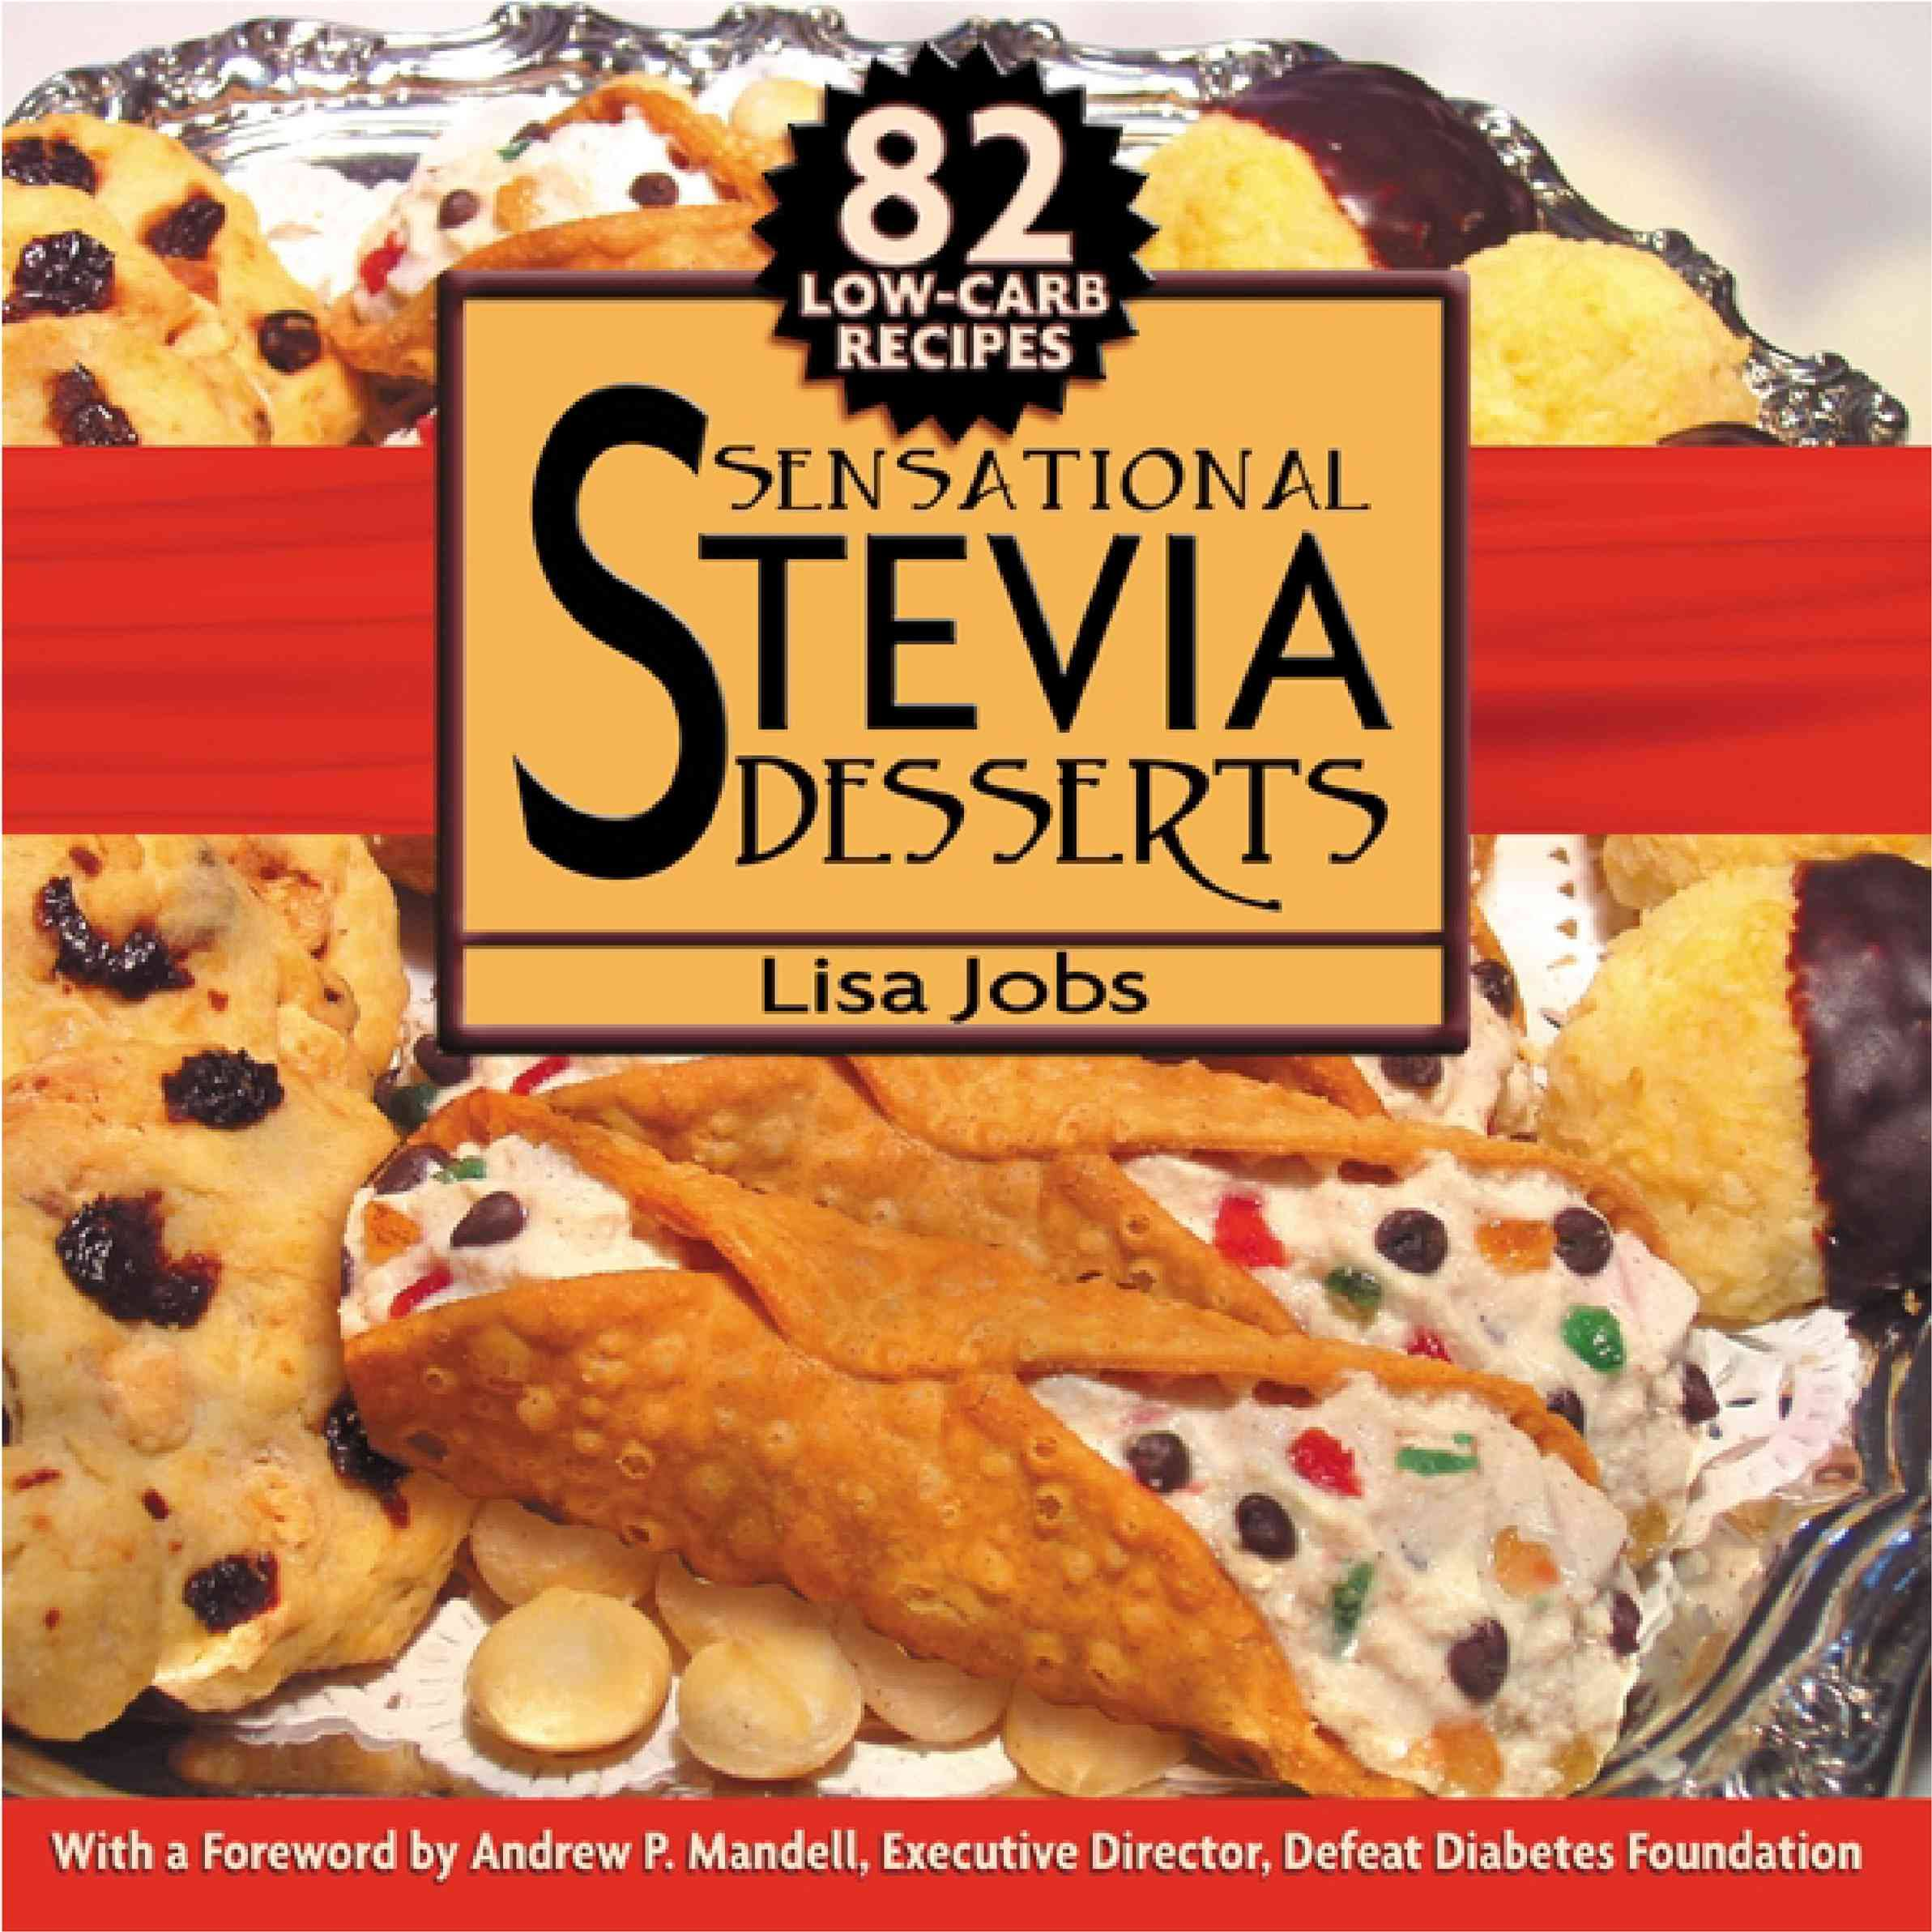 Thank you gift sensational stevia desserts defeat diabetes limited time offer forumfinder Choice Image